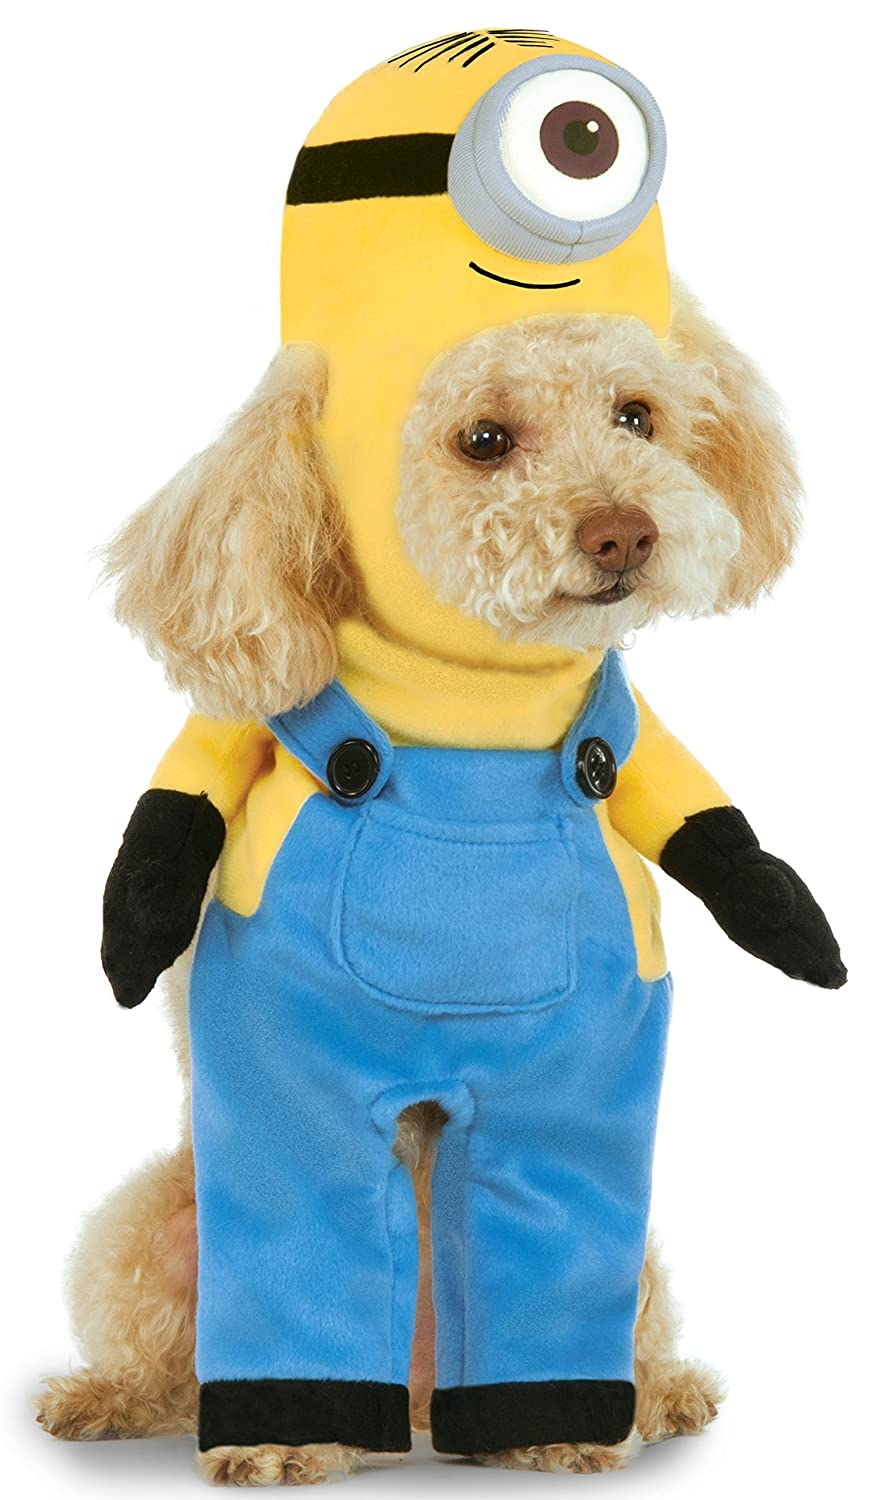 Minion Stuart Arms Pet Suit